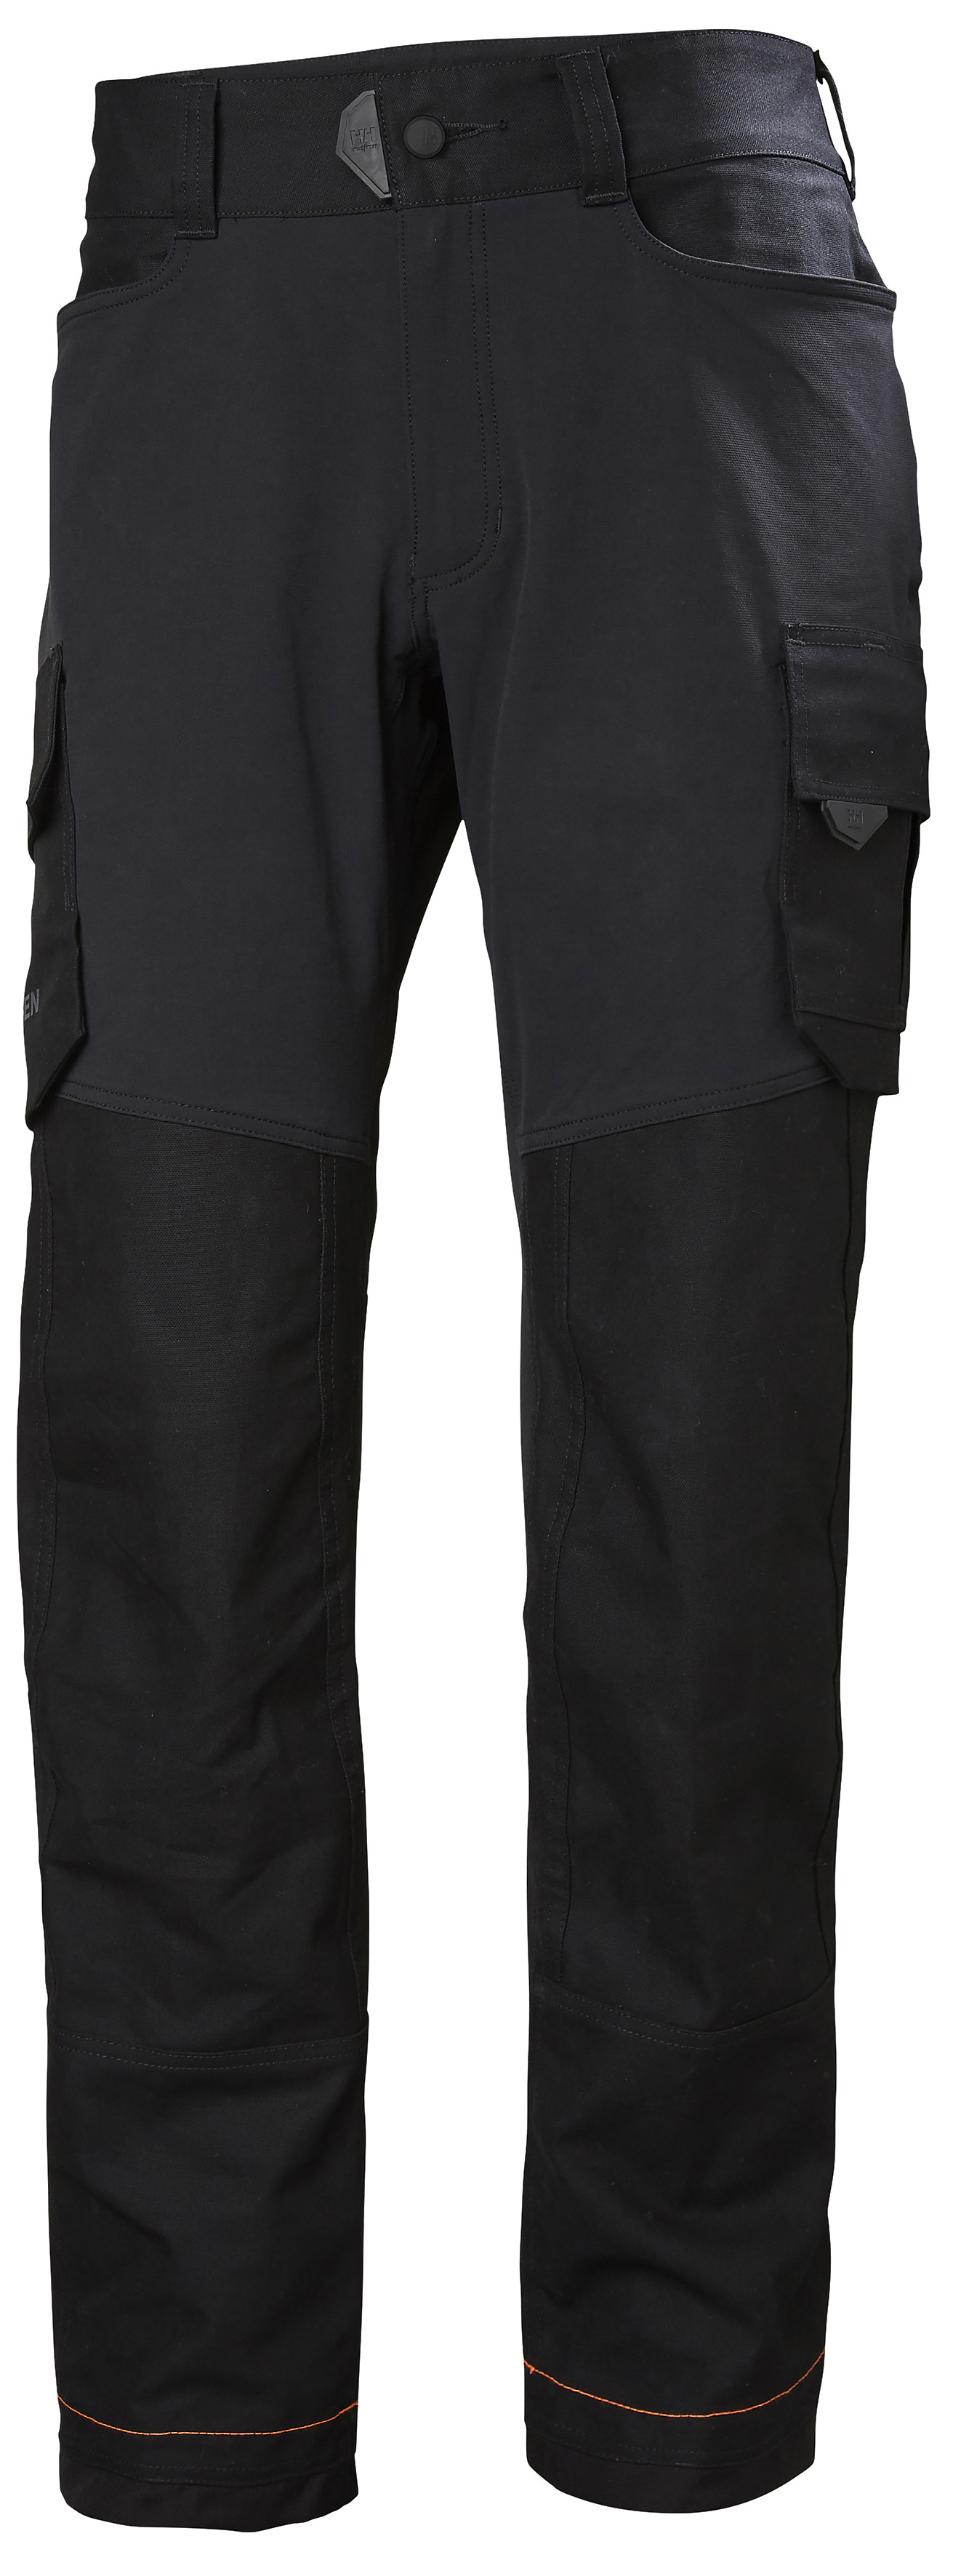 Штаны Helly Hansen Chelsea Evolution Service Pant - 77445 (Black; W34/L32)